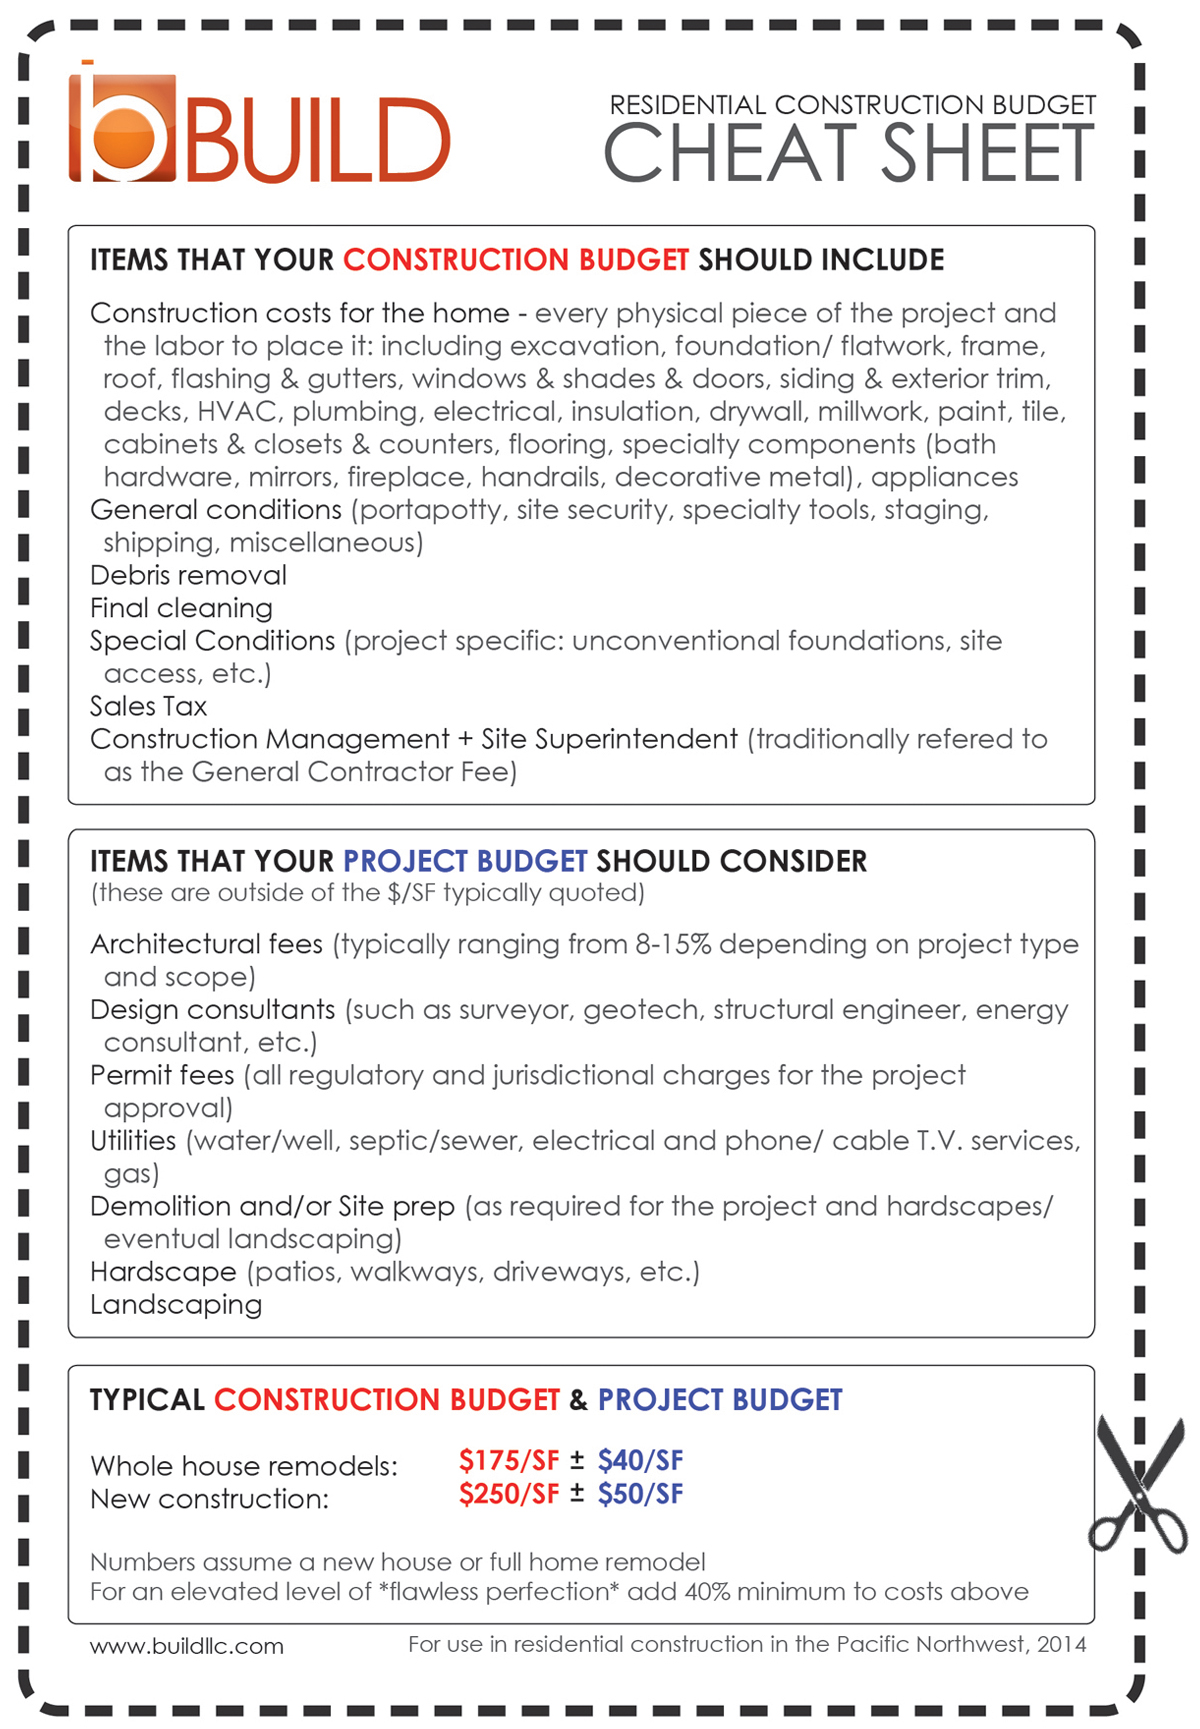 construction budget cheat sheet